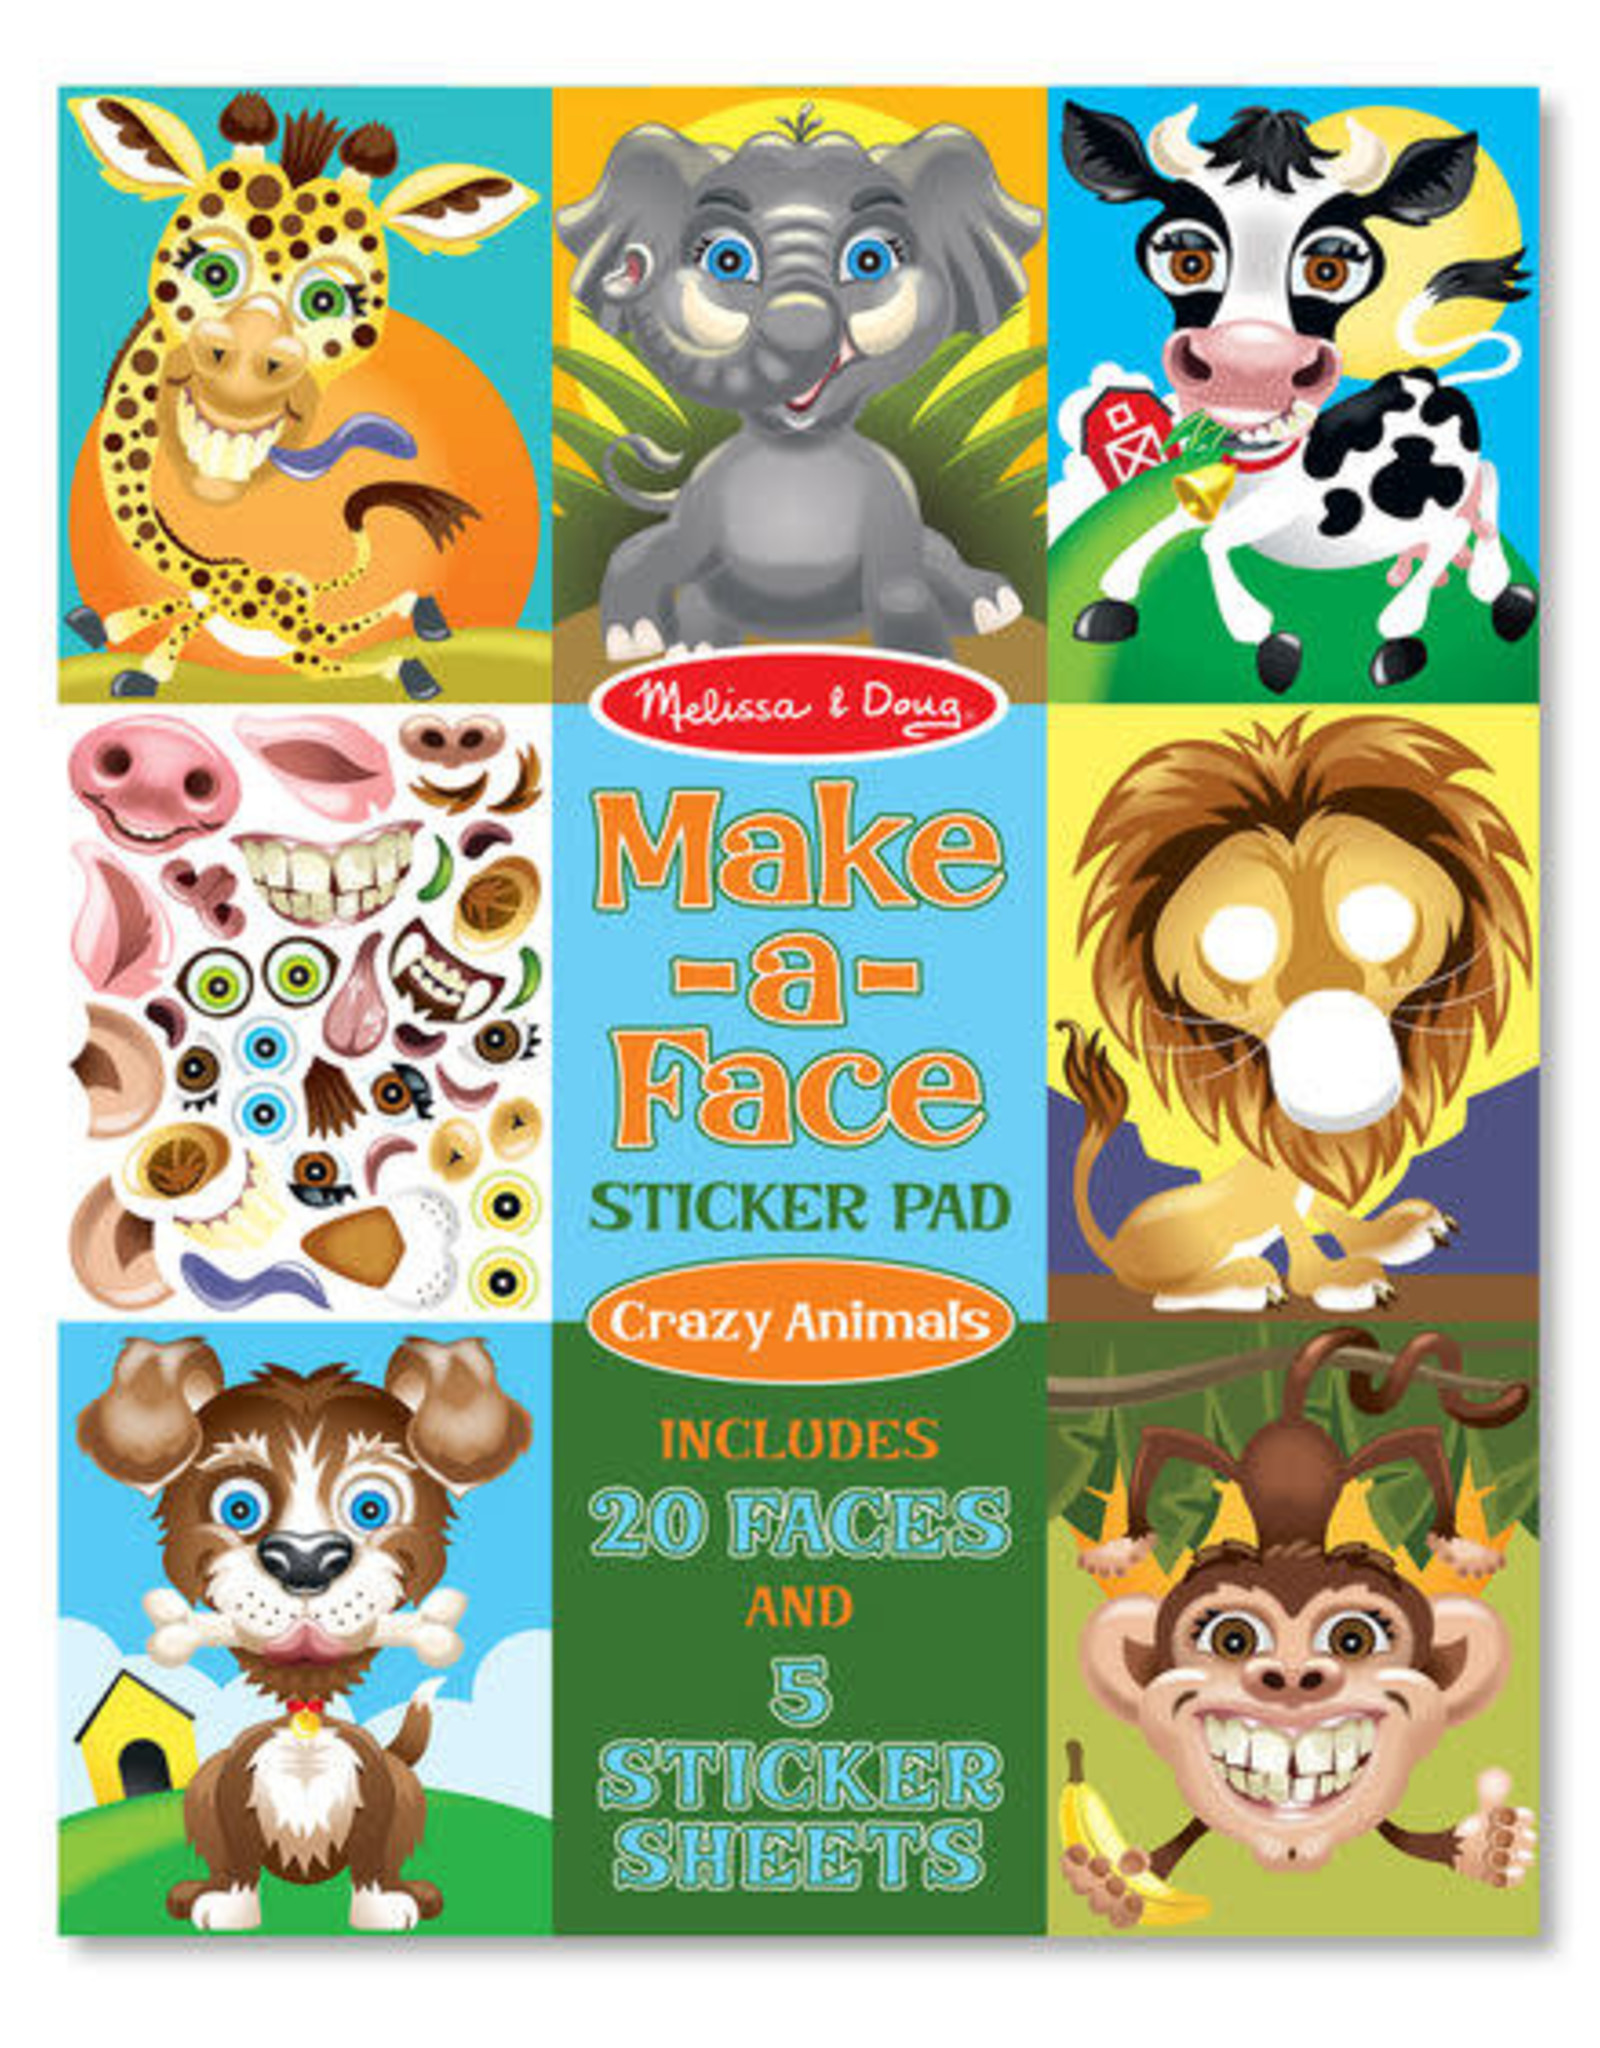 Melissa & Doug Make-a-Face Sticker Pad - Crazy Animals